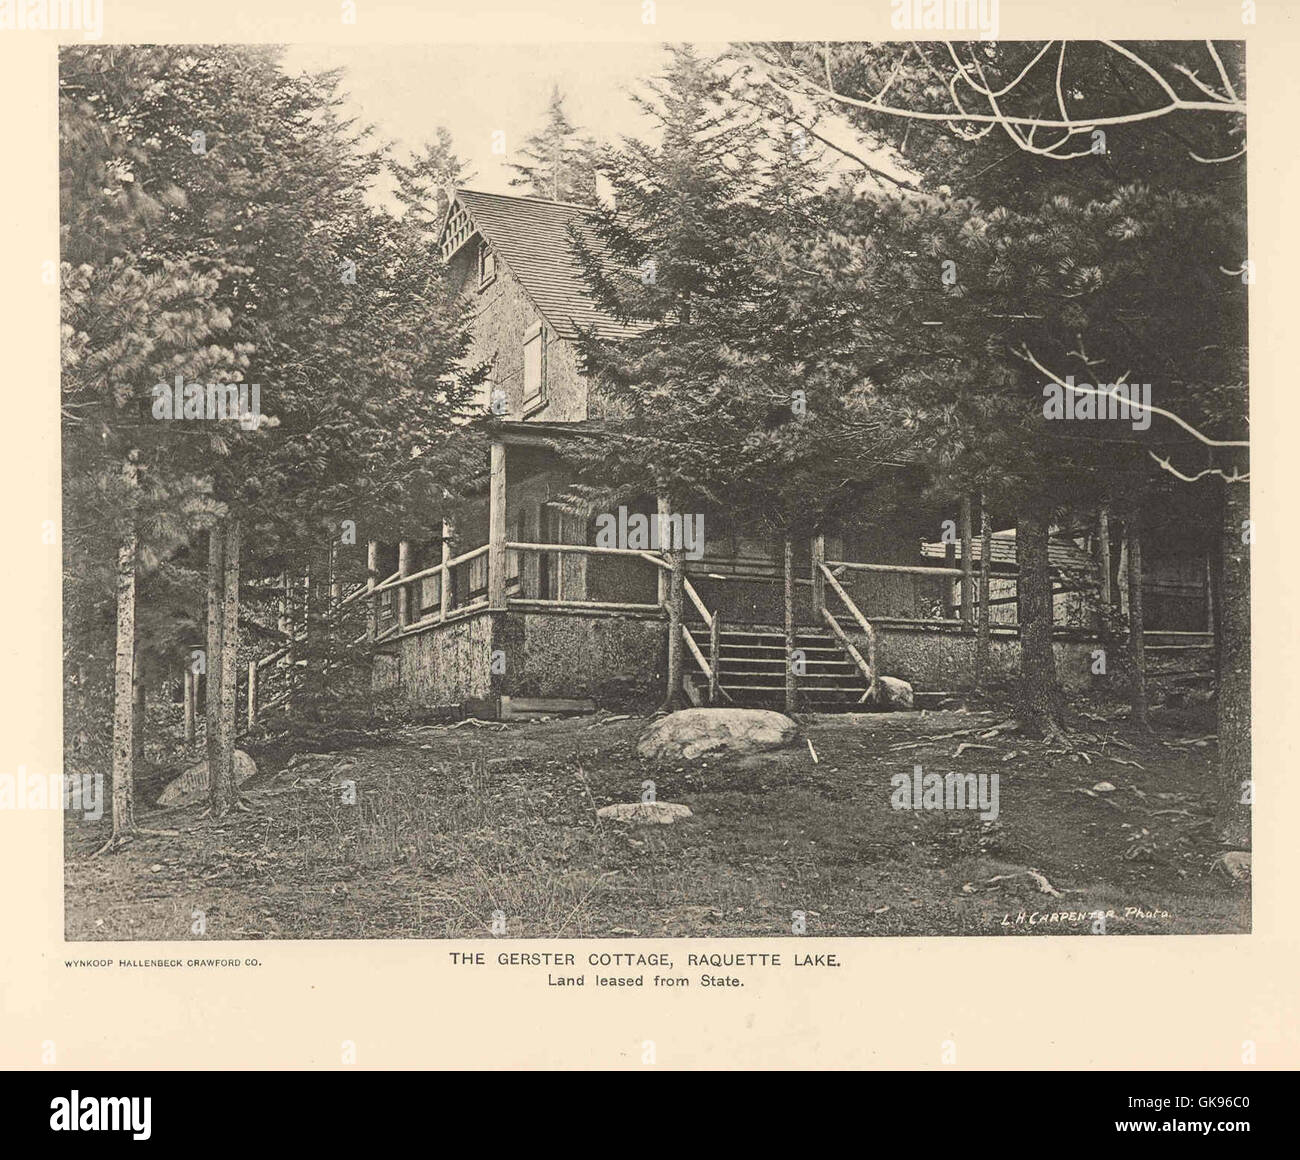 43064 Gerster Cottage, Raquette Lake Land Leased from State - Stock Image